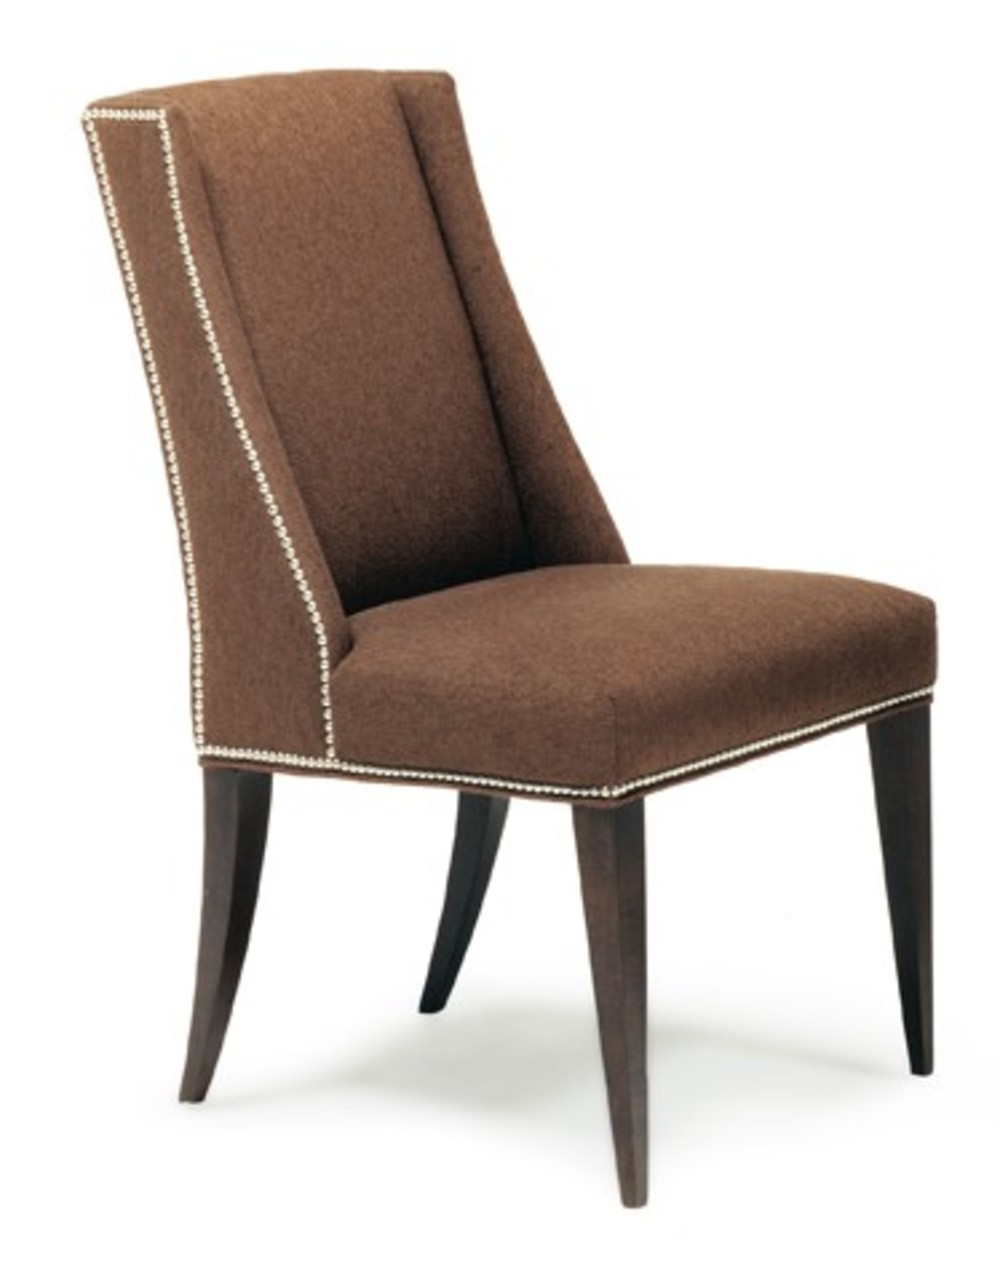 Precedent - Reid Dining Side Chair